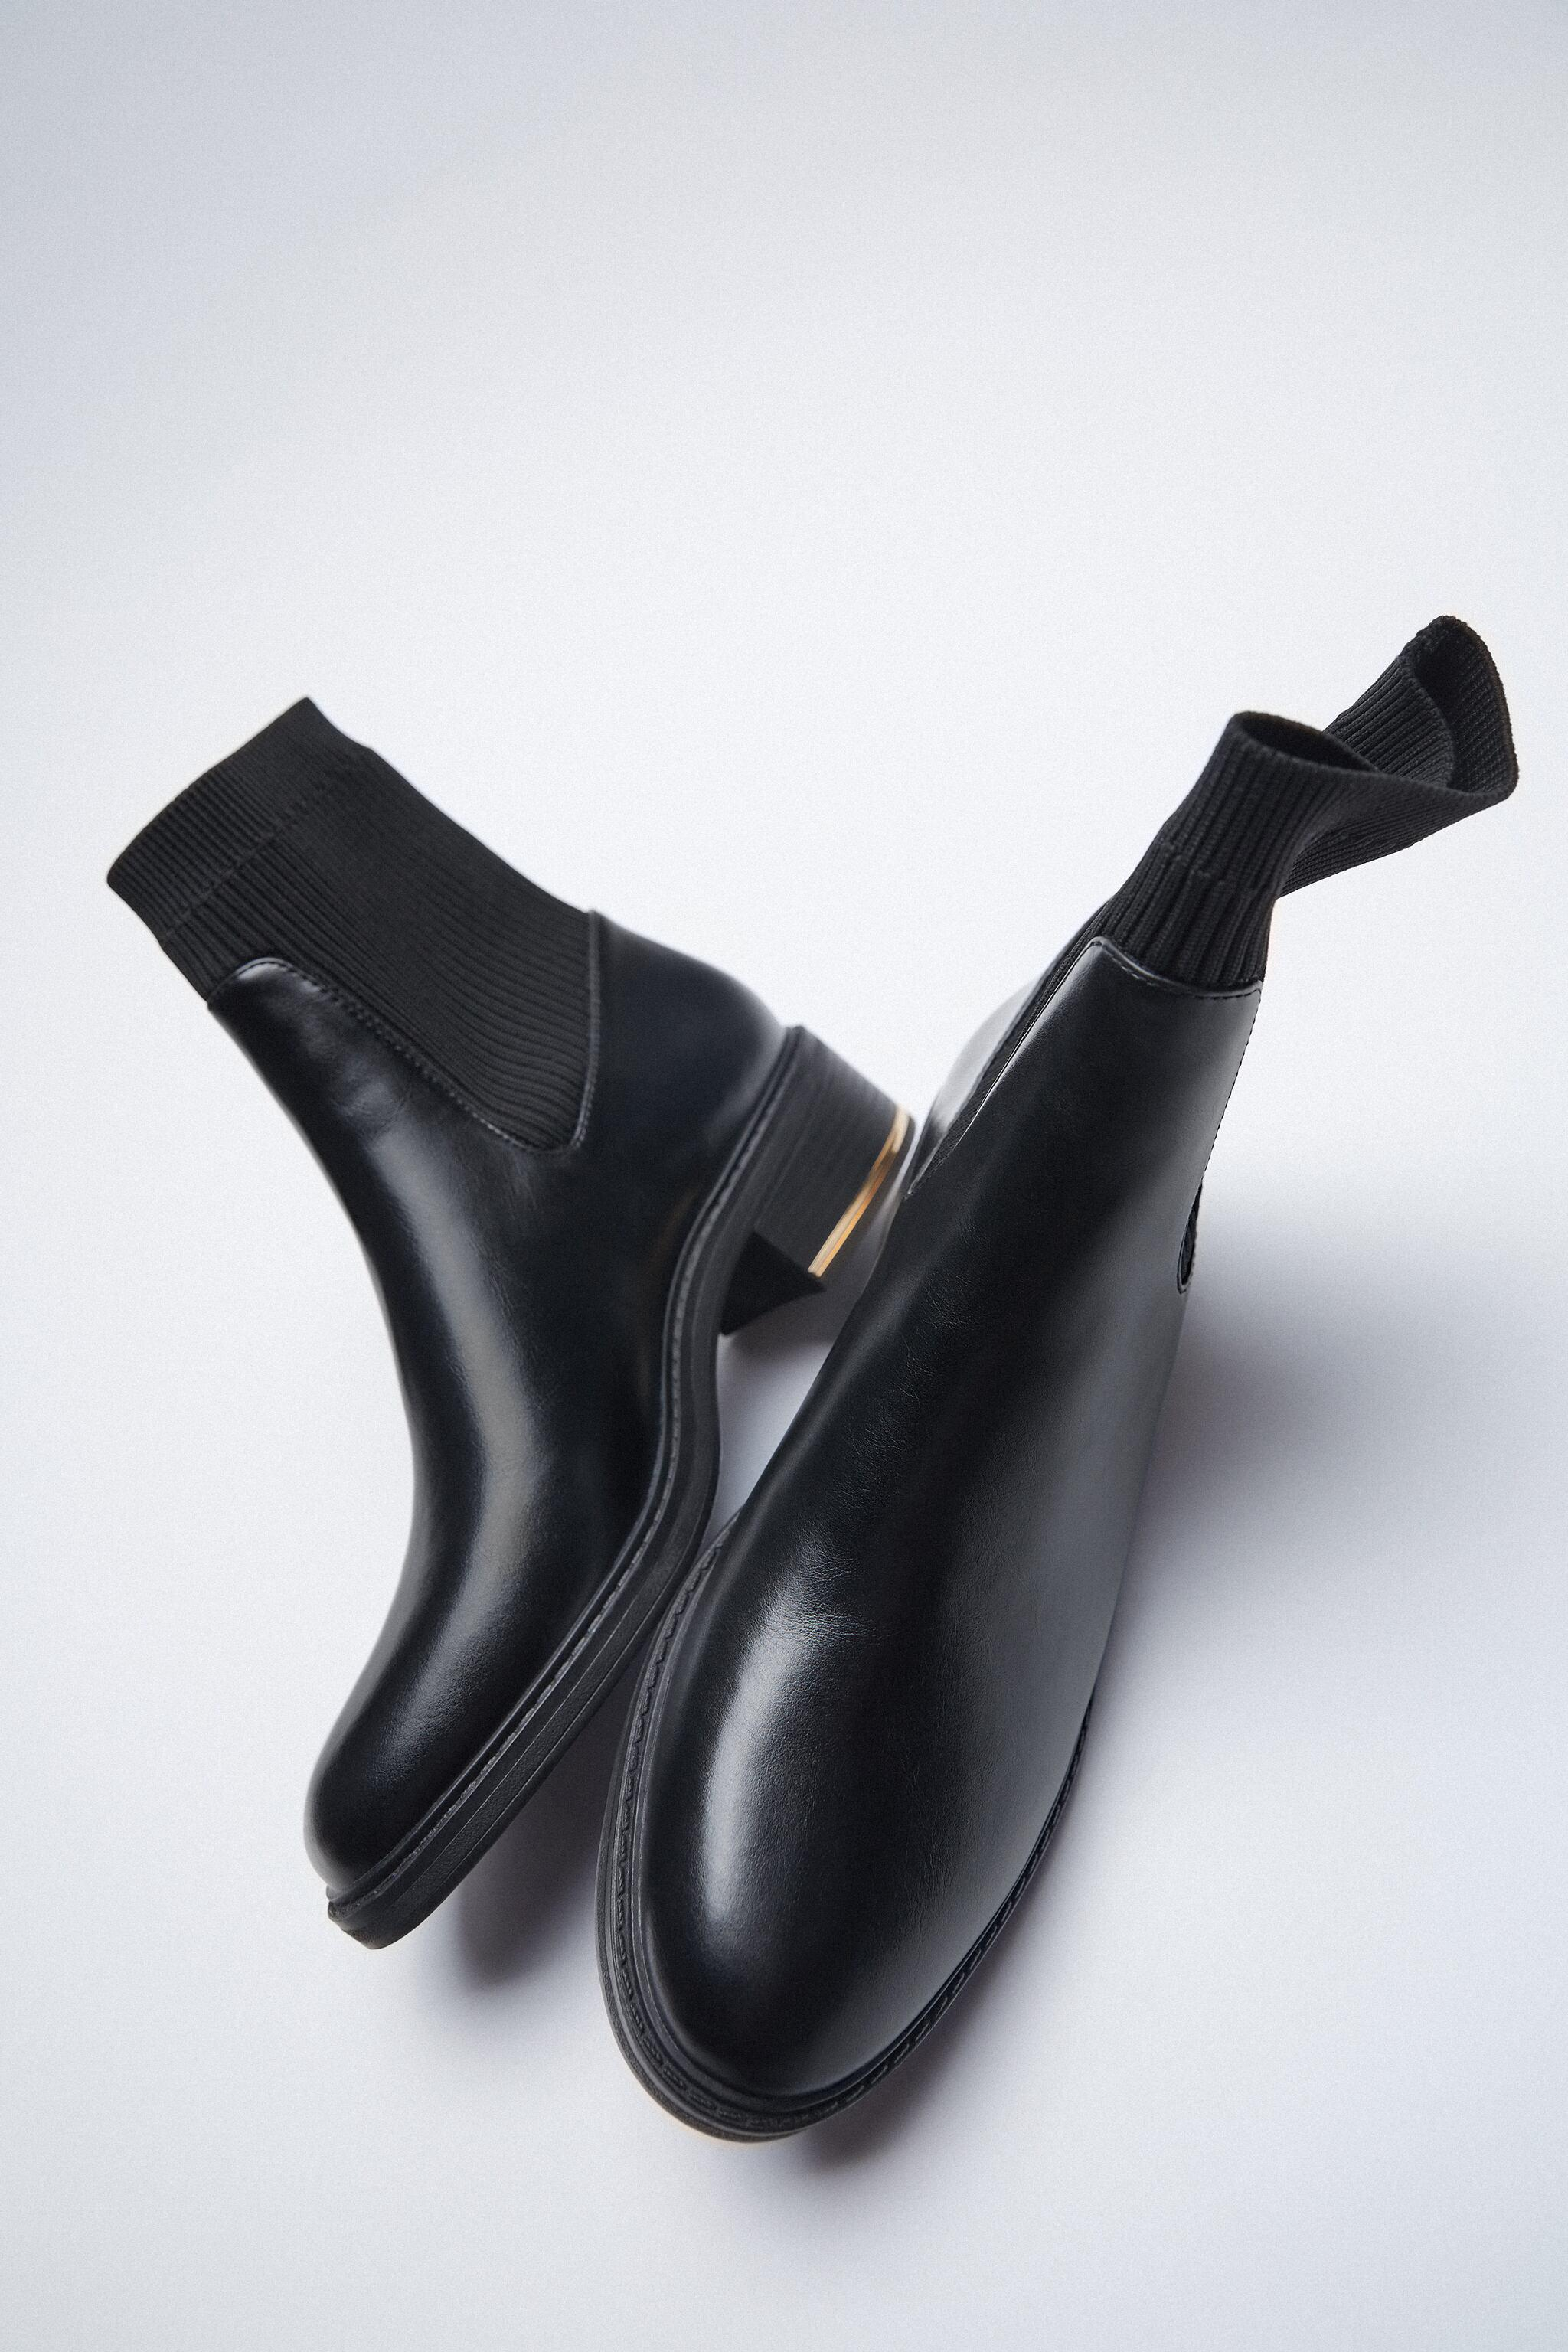 LOW HEELED SOCK-STYLE ANKLE BOOTS 4